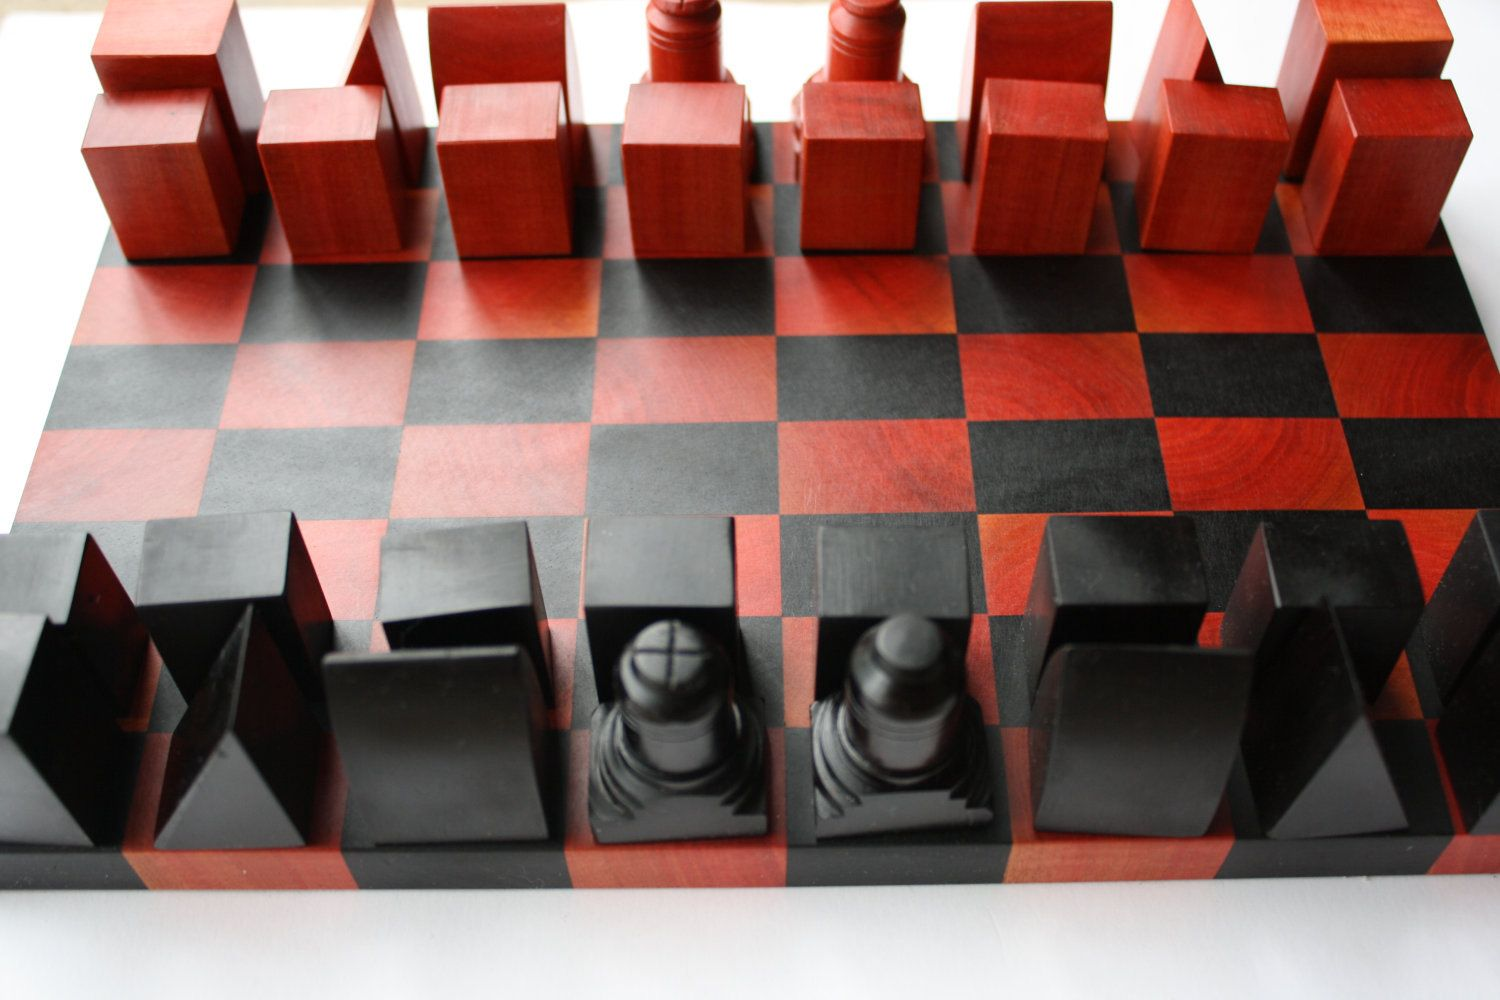 minimalist chess set - pink ivory and african blackwood | chess